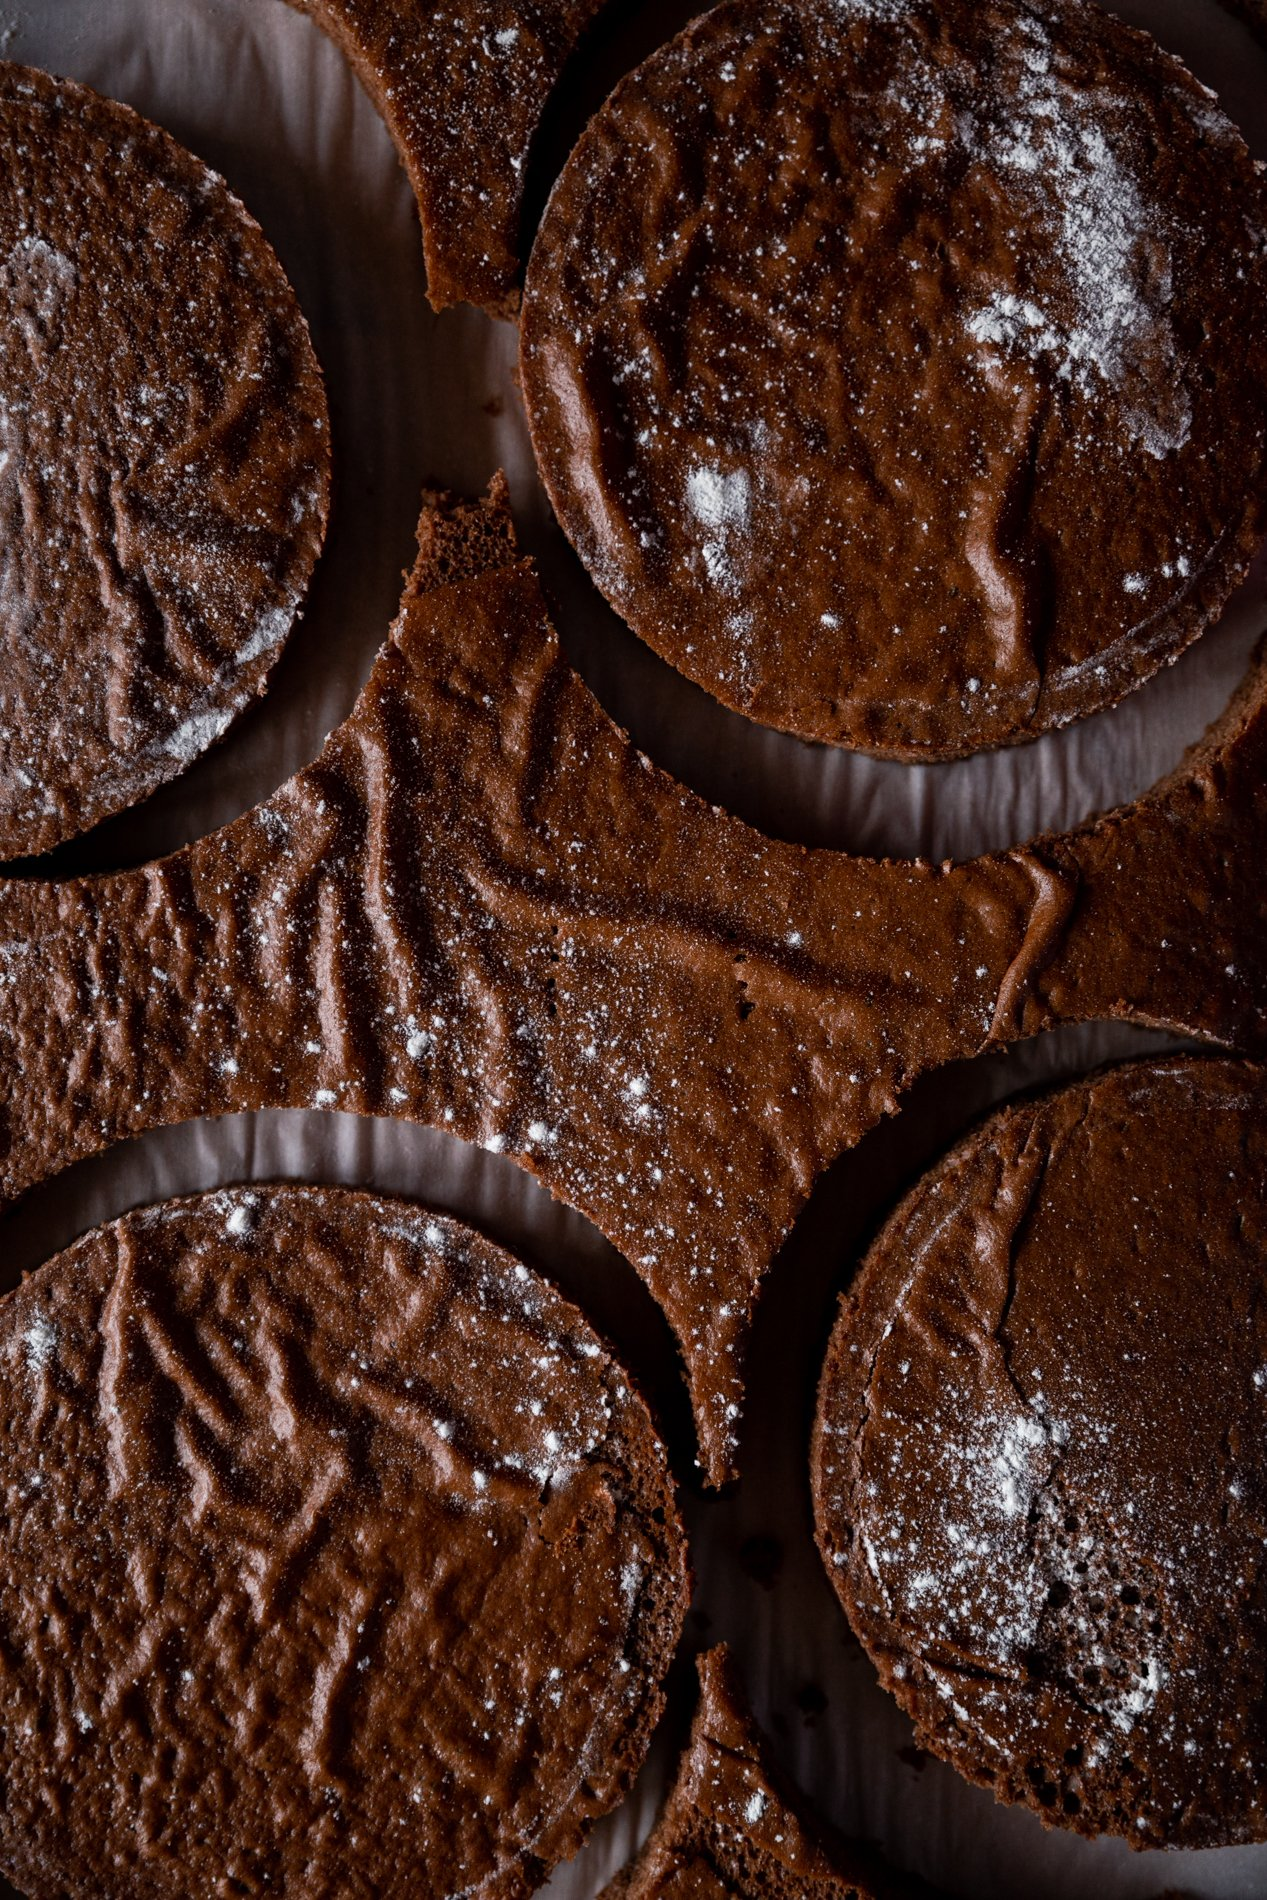 overhead view of a slab of chocolate cake with circles cut out of it, lightly dusted with flour.